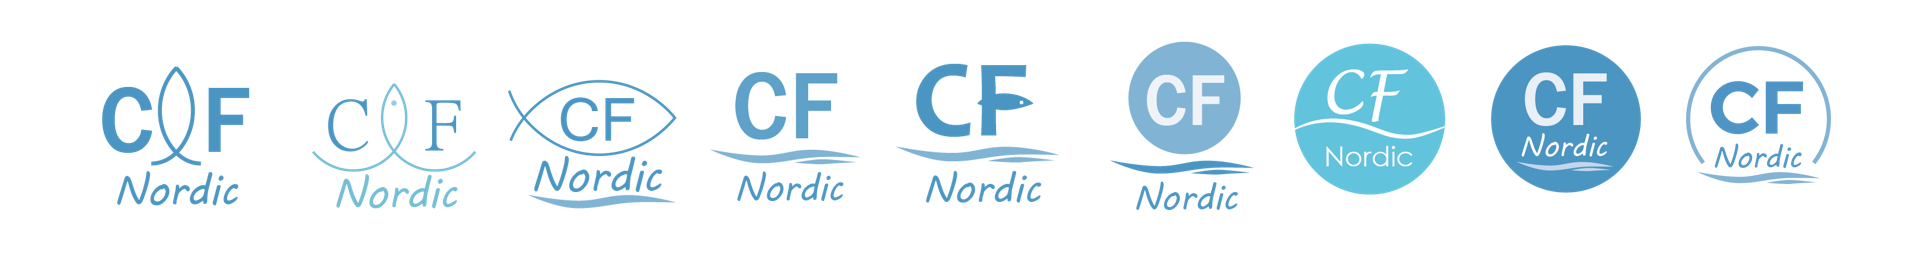 CF LOGO Development